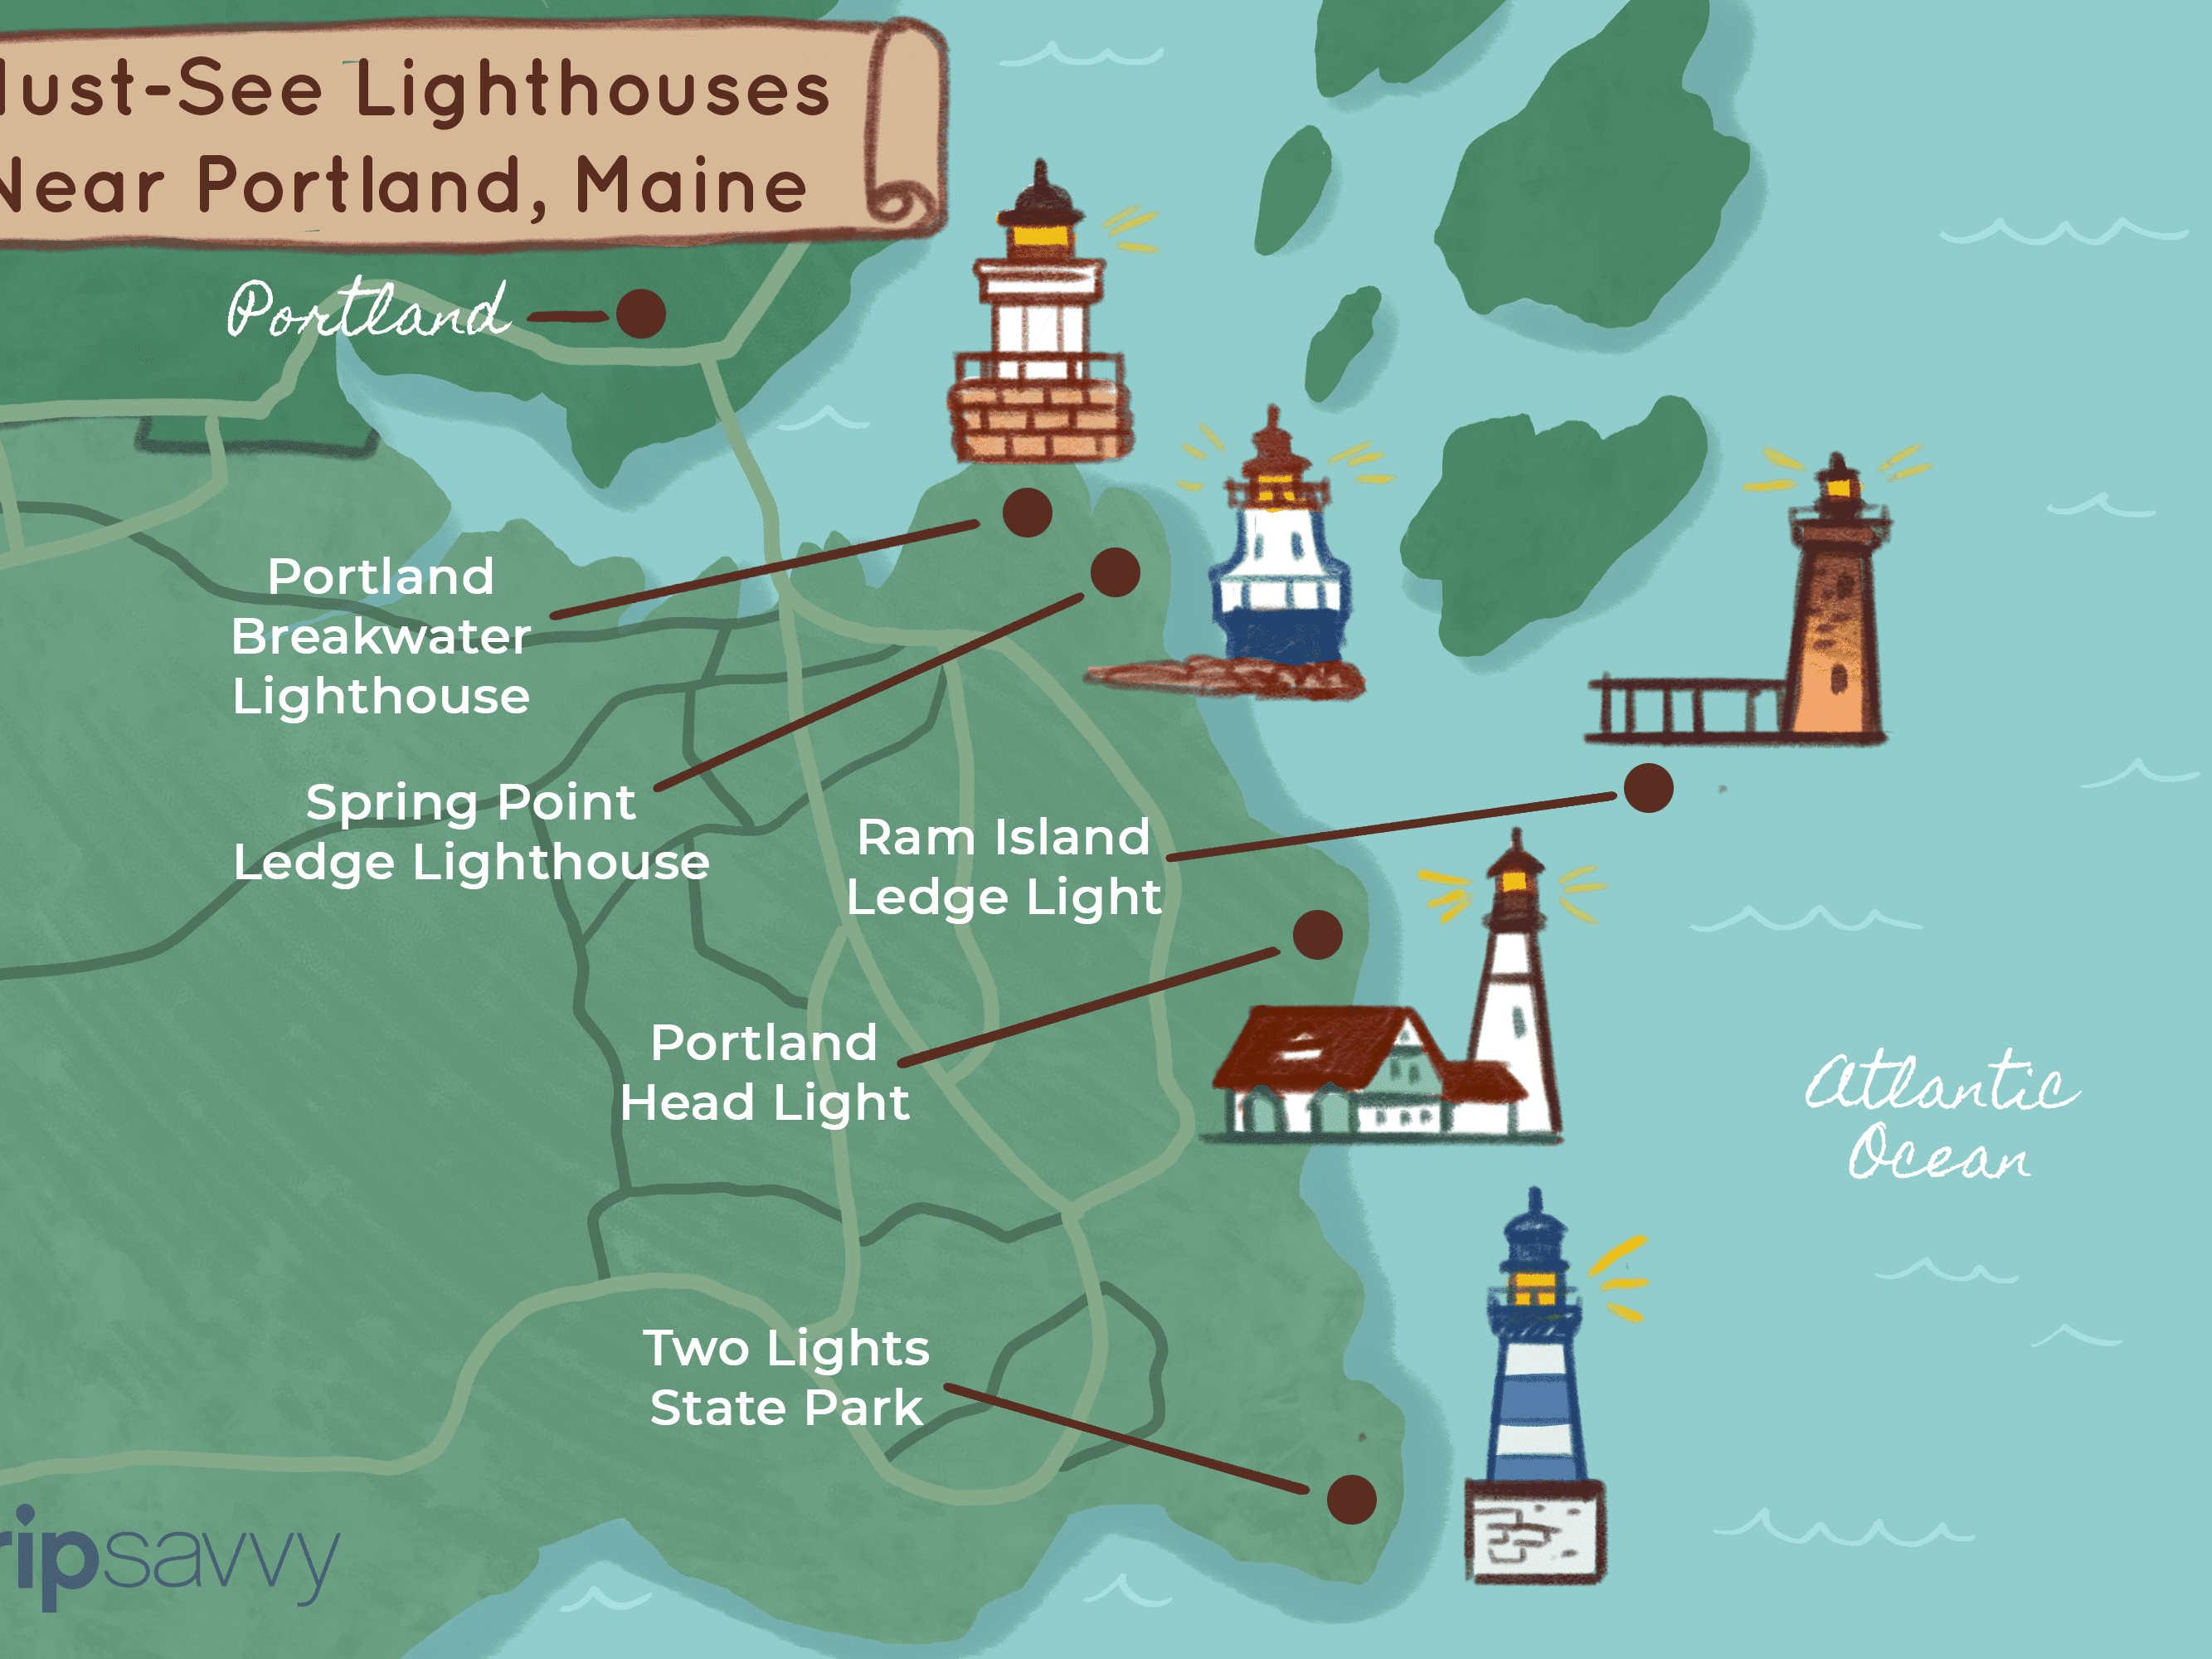 5 Lighthouses to See Near Portland, Maine on maine school districts map, acadia maine map, blue hill maine map, midcoast maine map, state of maine map, maine bay map, gorham maine street map, maine western map, maine woods map, maine storm map, maine east map, camden maine map, maine harbor map, maine oregon map, maine desert map, maine north map, new orleans map, maine mall portland maine map, maine map with latitude and longitude, bar harbor map,